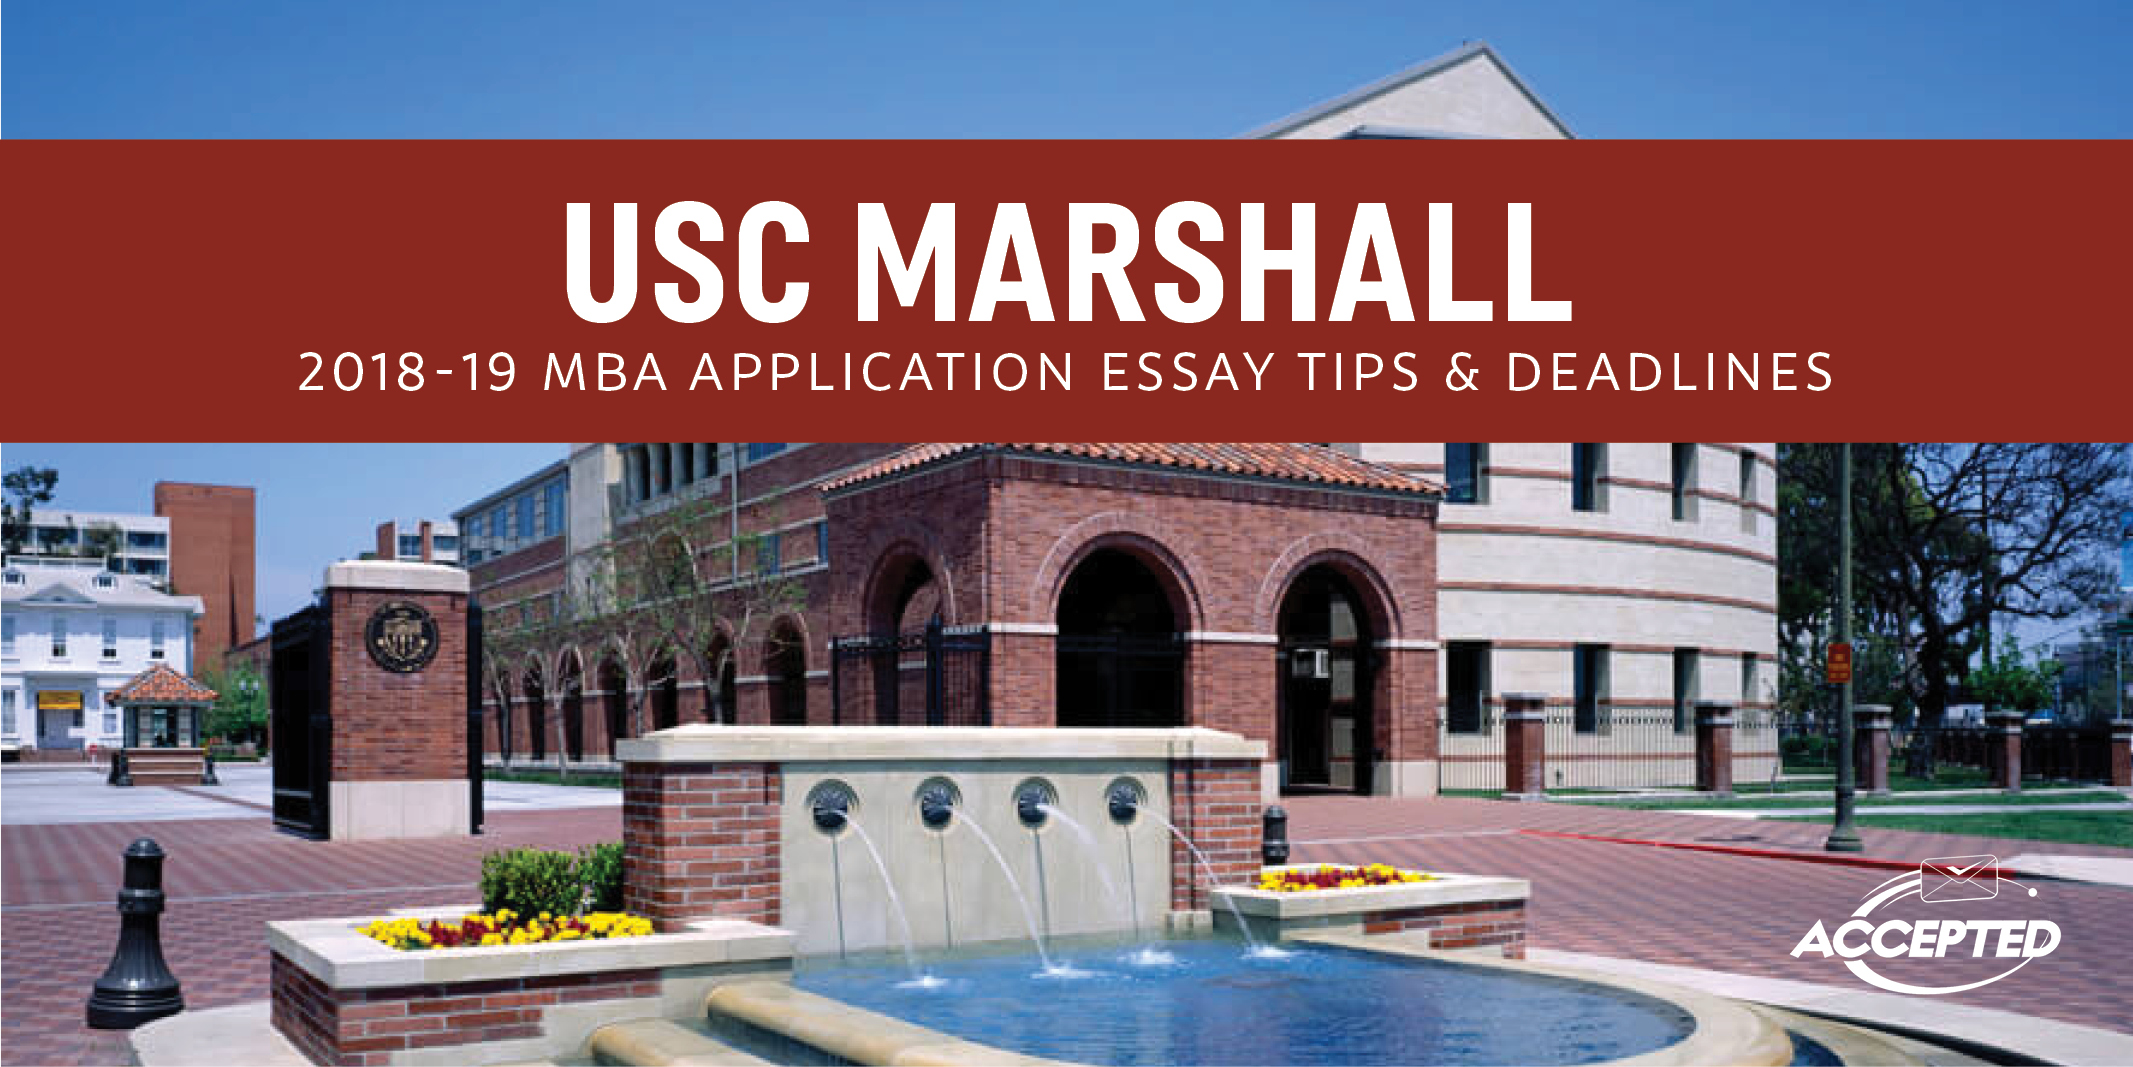 USC Marshall 2017-8 MBA Essay tips and deadlines